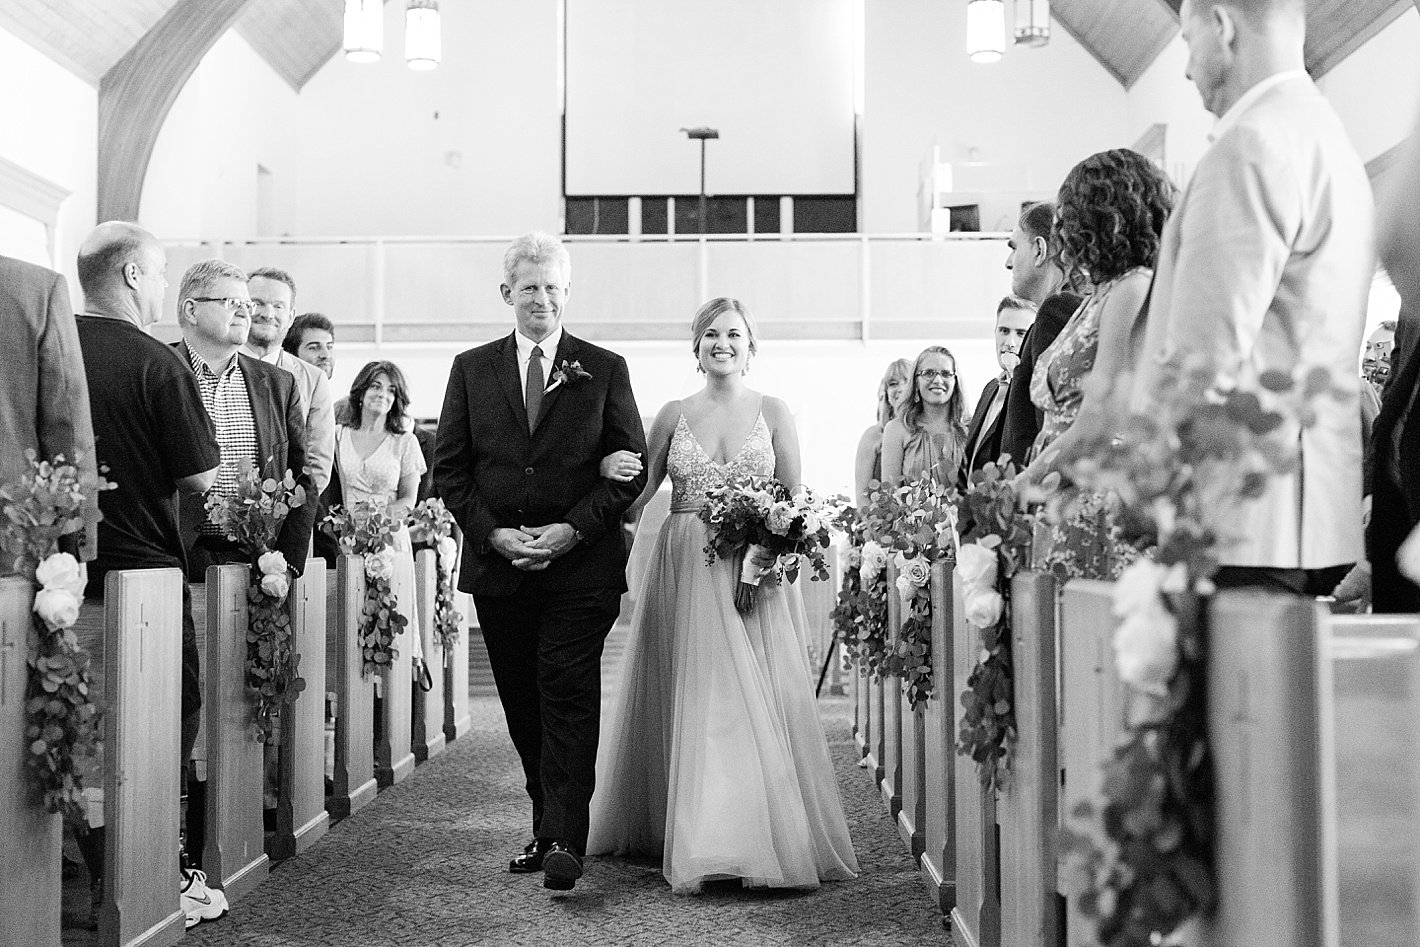 wedding ceremony photography at Central Presbyterian Church in Towson